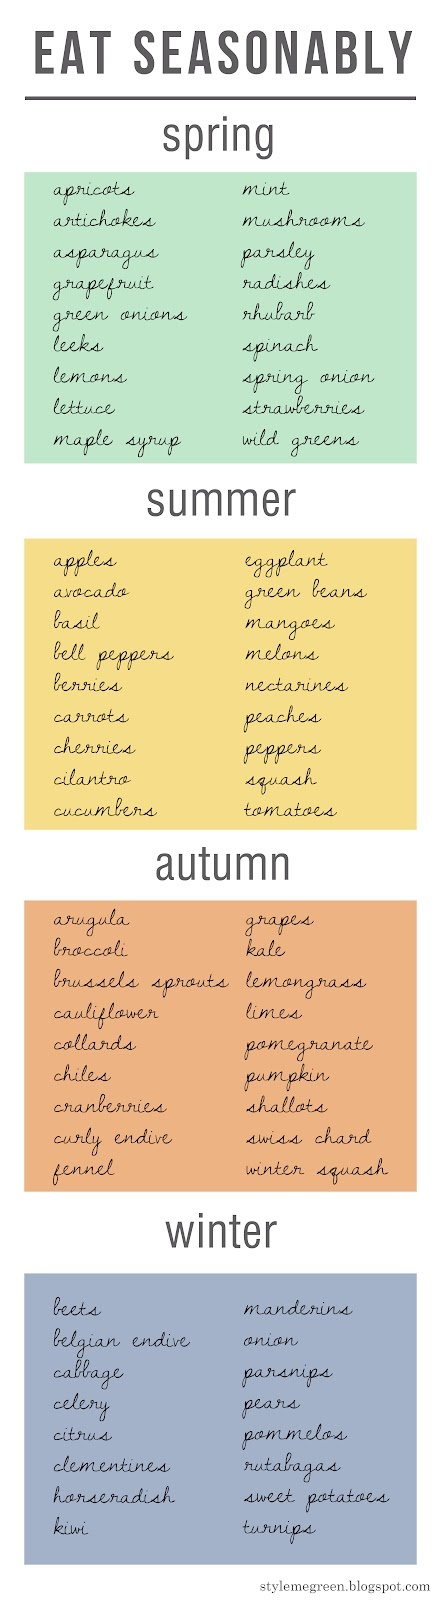 Produce For Each Season